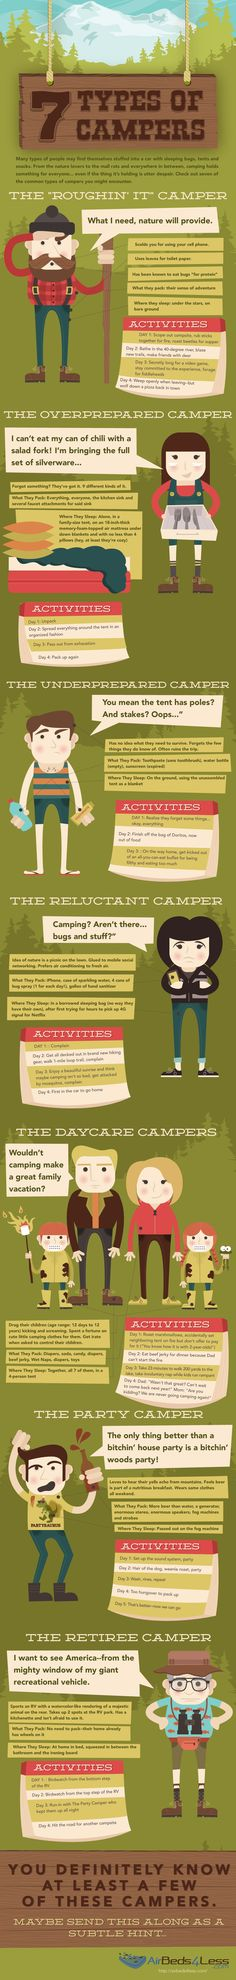 7 Types of Campers